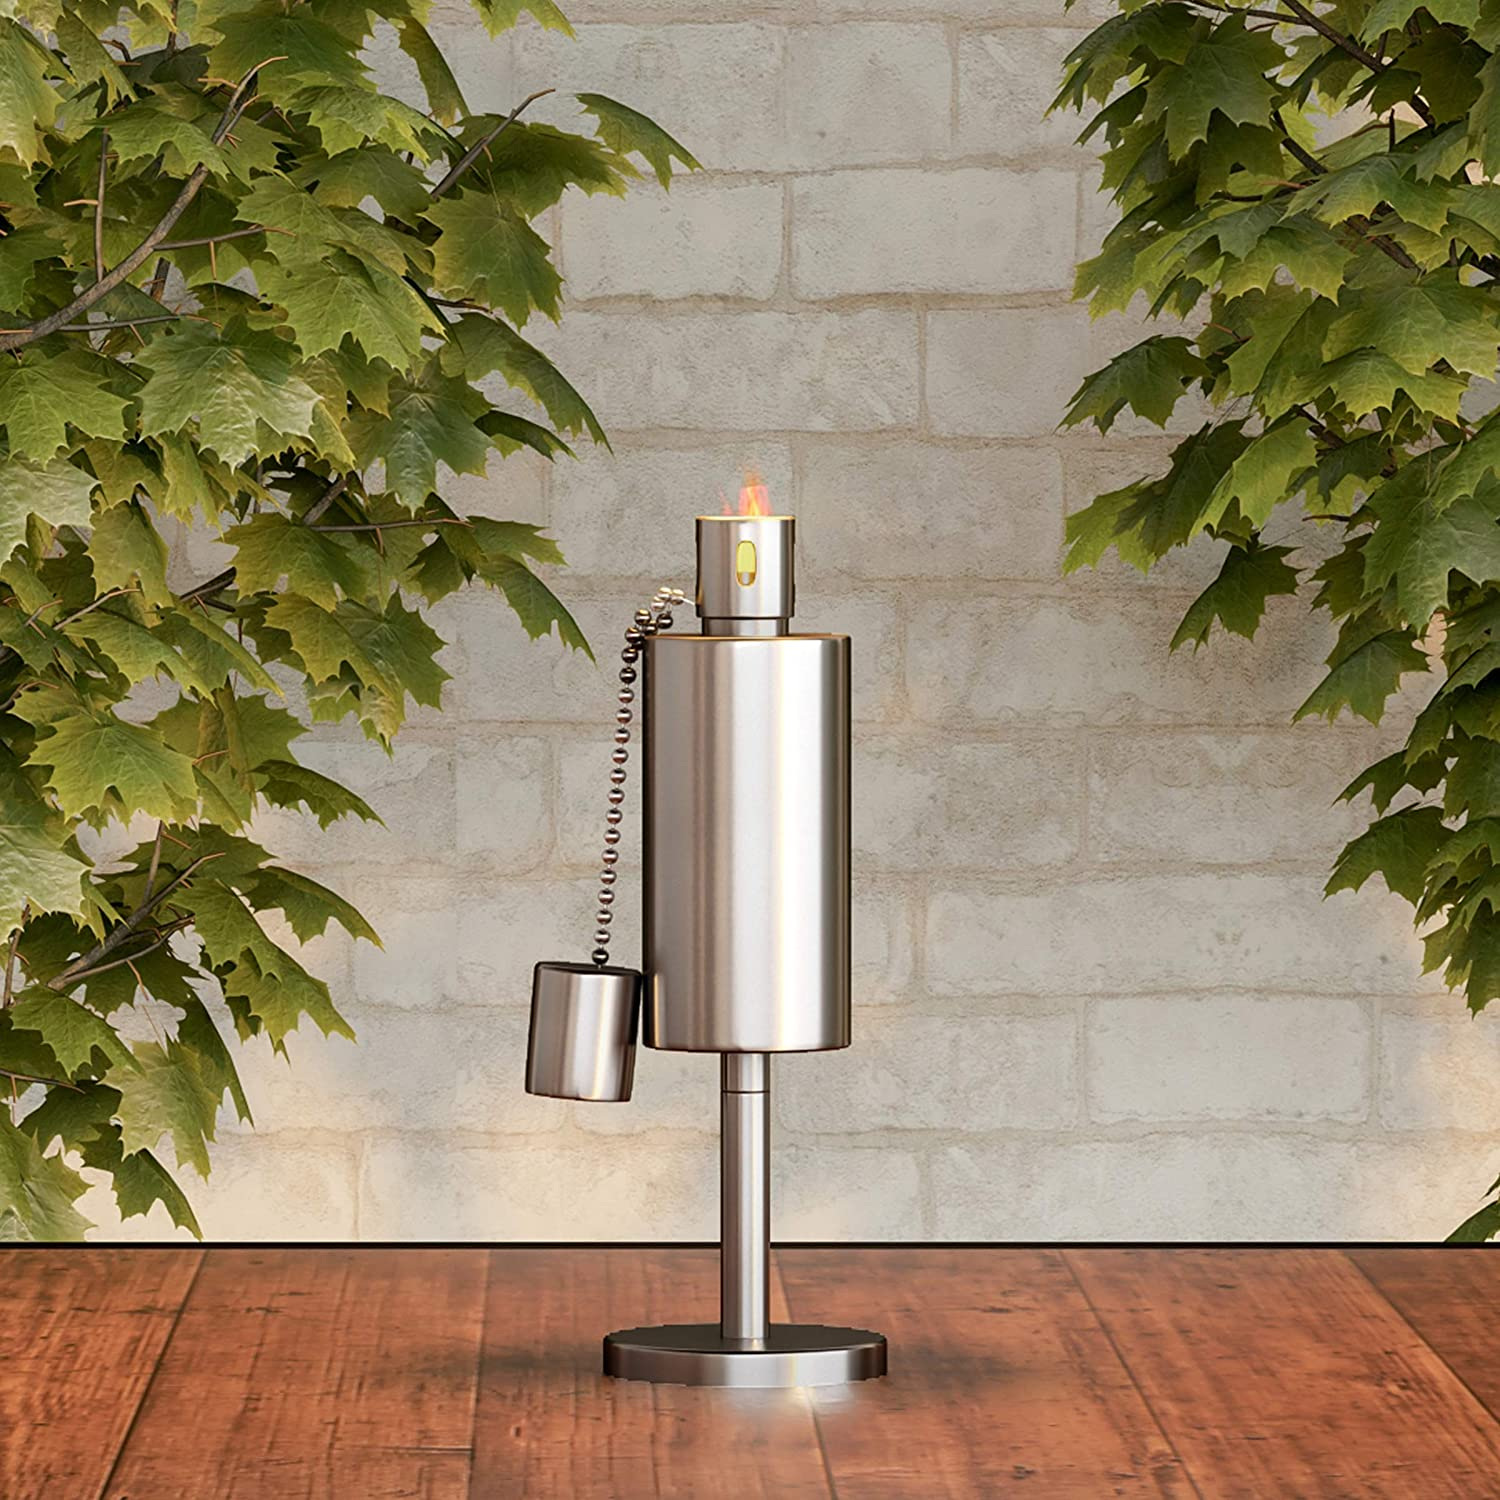 """Pure Garden 50-221 Tabletop Torch Lamp-10.5"""" Stainless Steel Outdoor Fuel Canister Flame Light for Citronella with Fiberglass Wick for Backyard, Patio"""